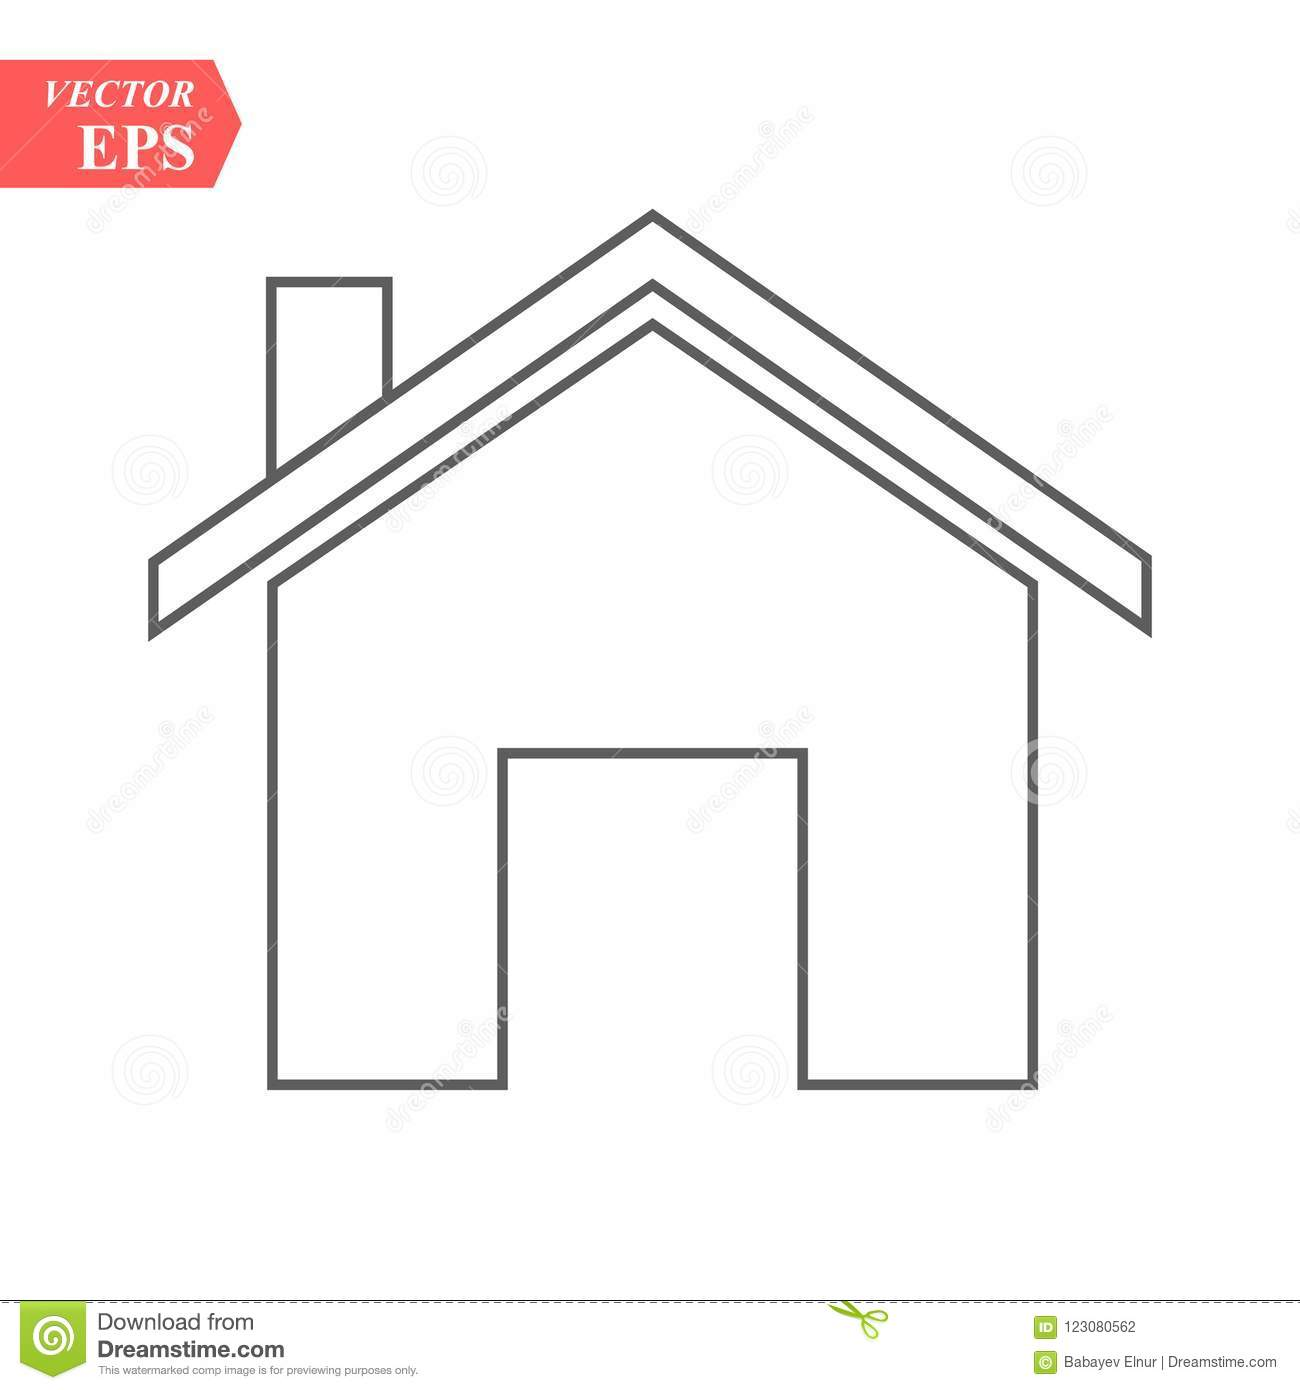 Outline Home Icon isolated on grey background. House pictogram. Line Homepage symbol for your web site design, logo, app, UI. Edit